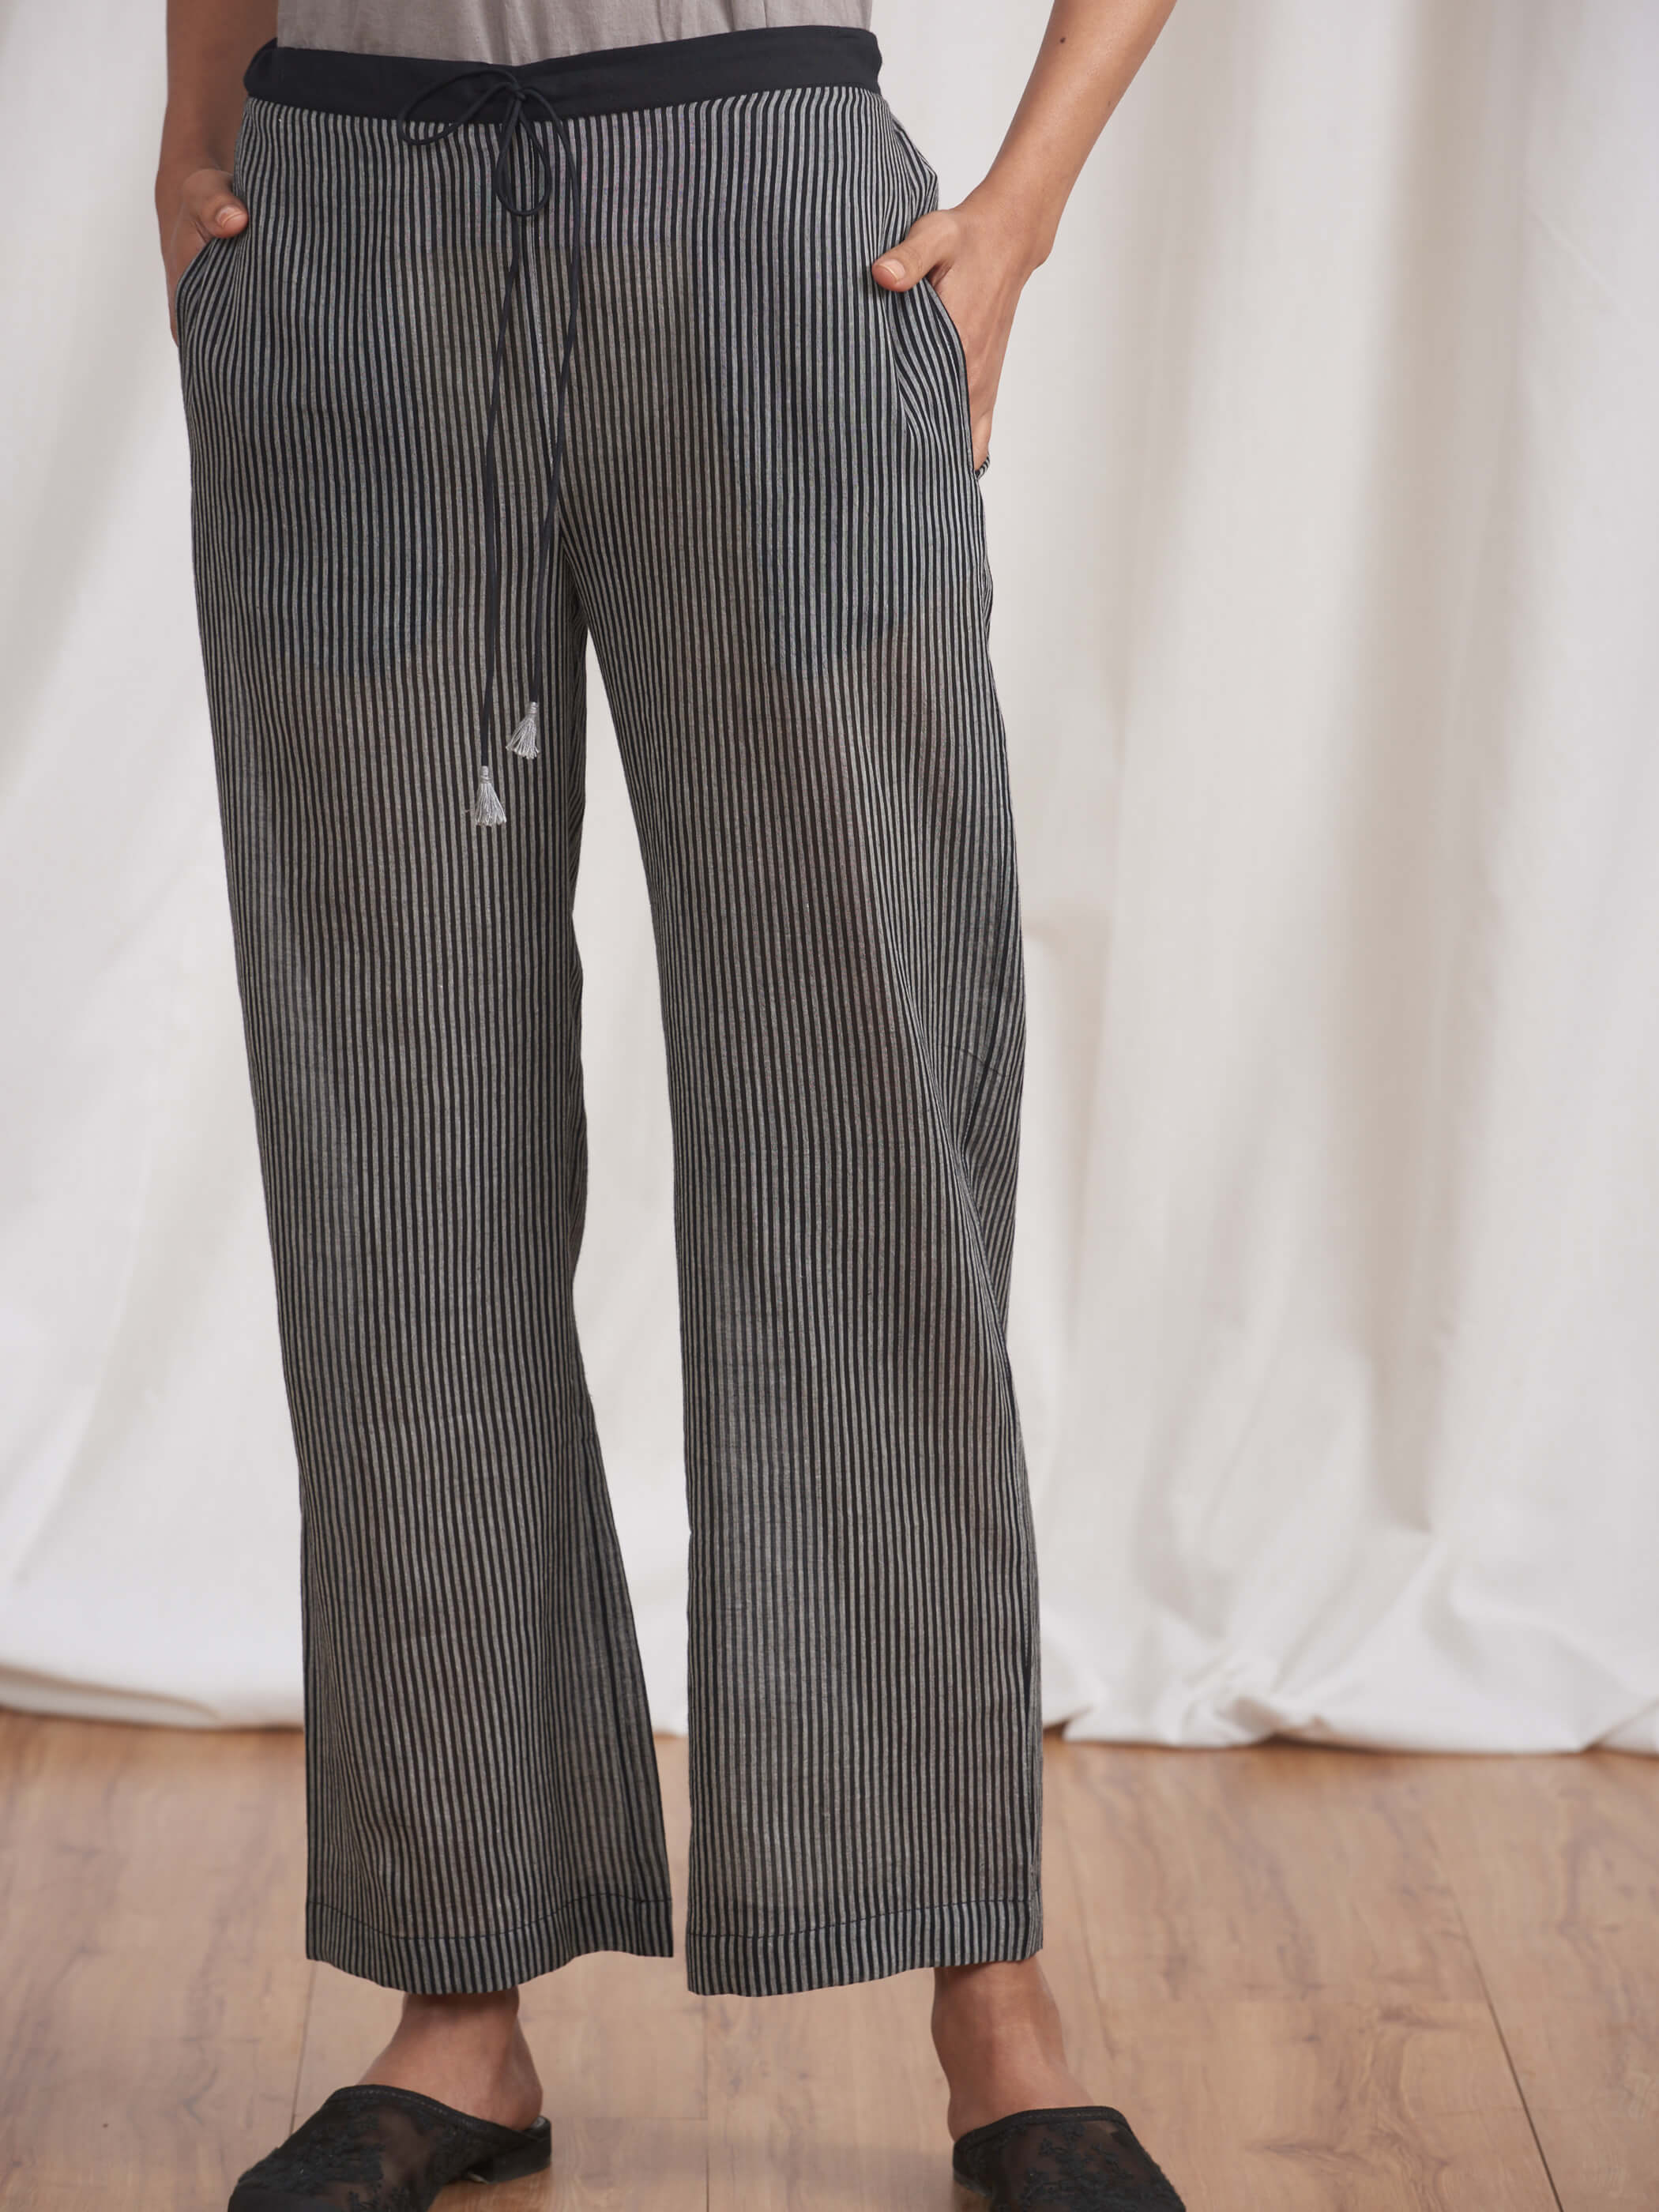 Yozora Stripe Pants - BunaStudio